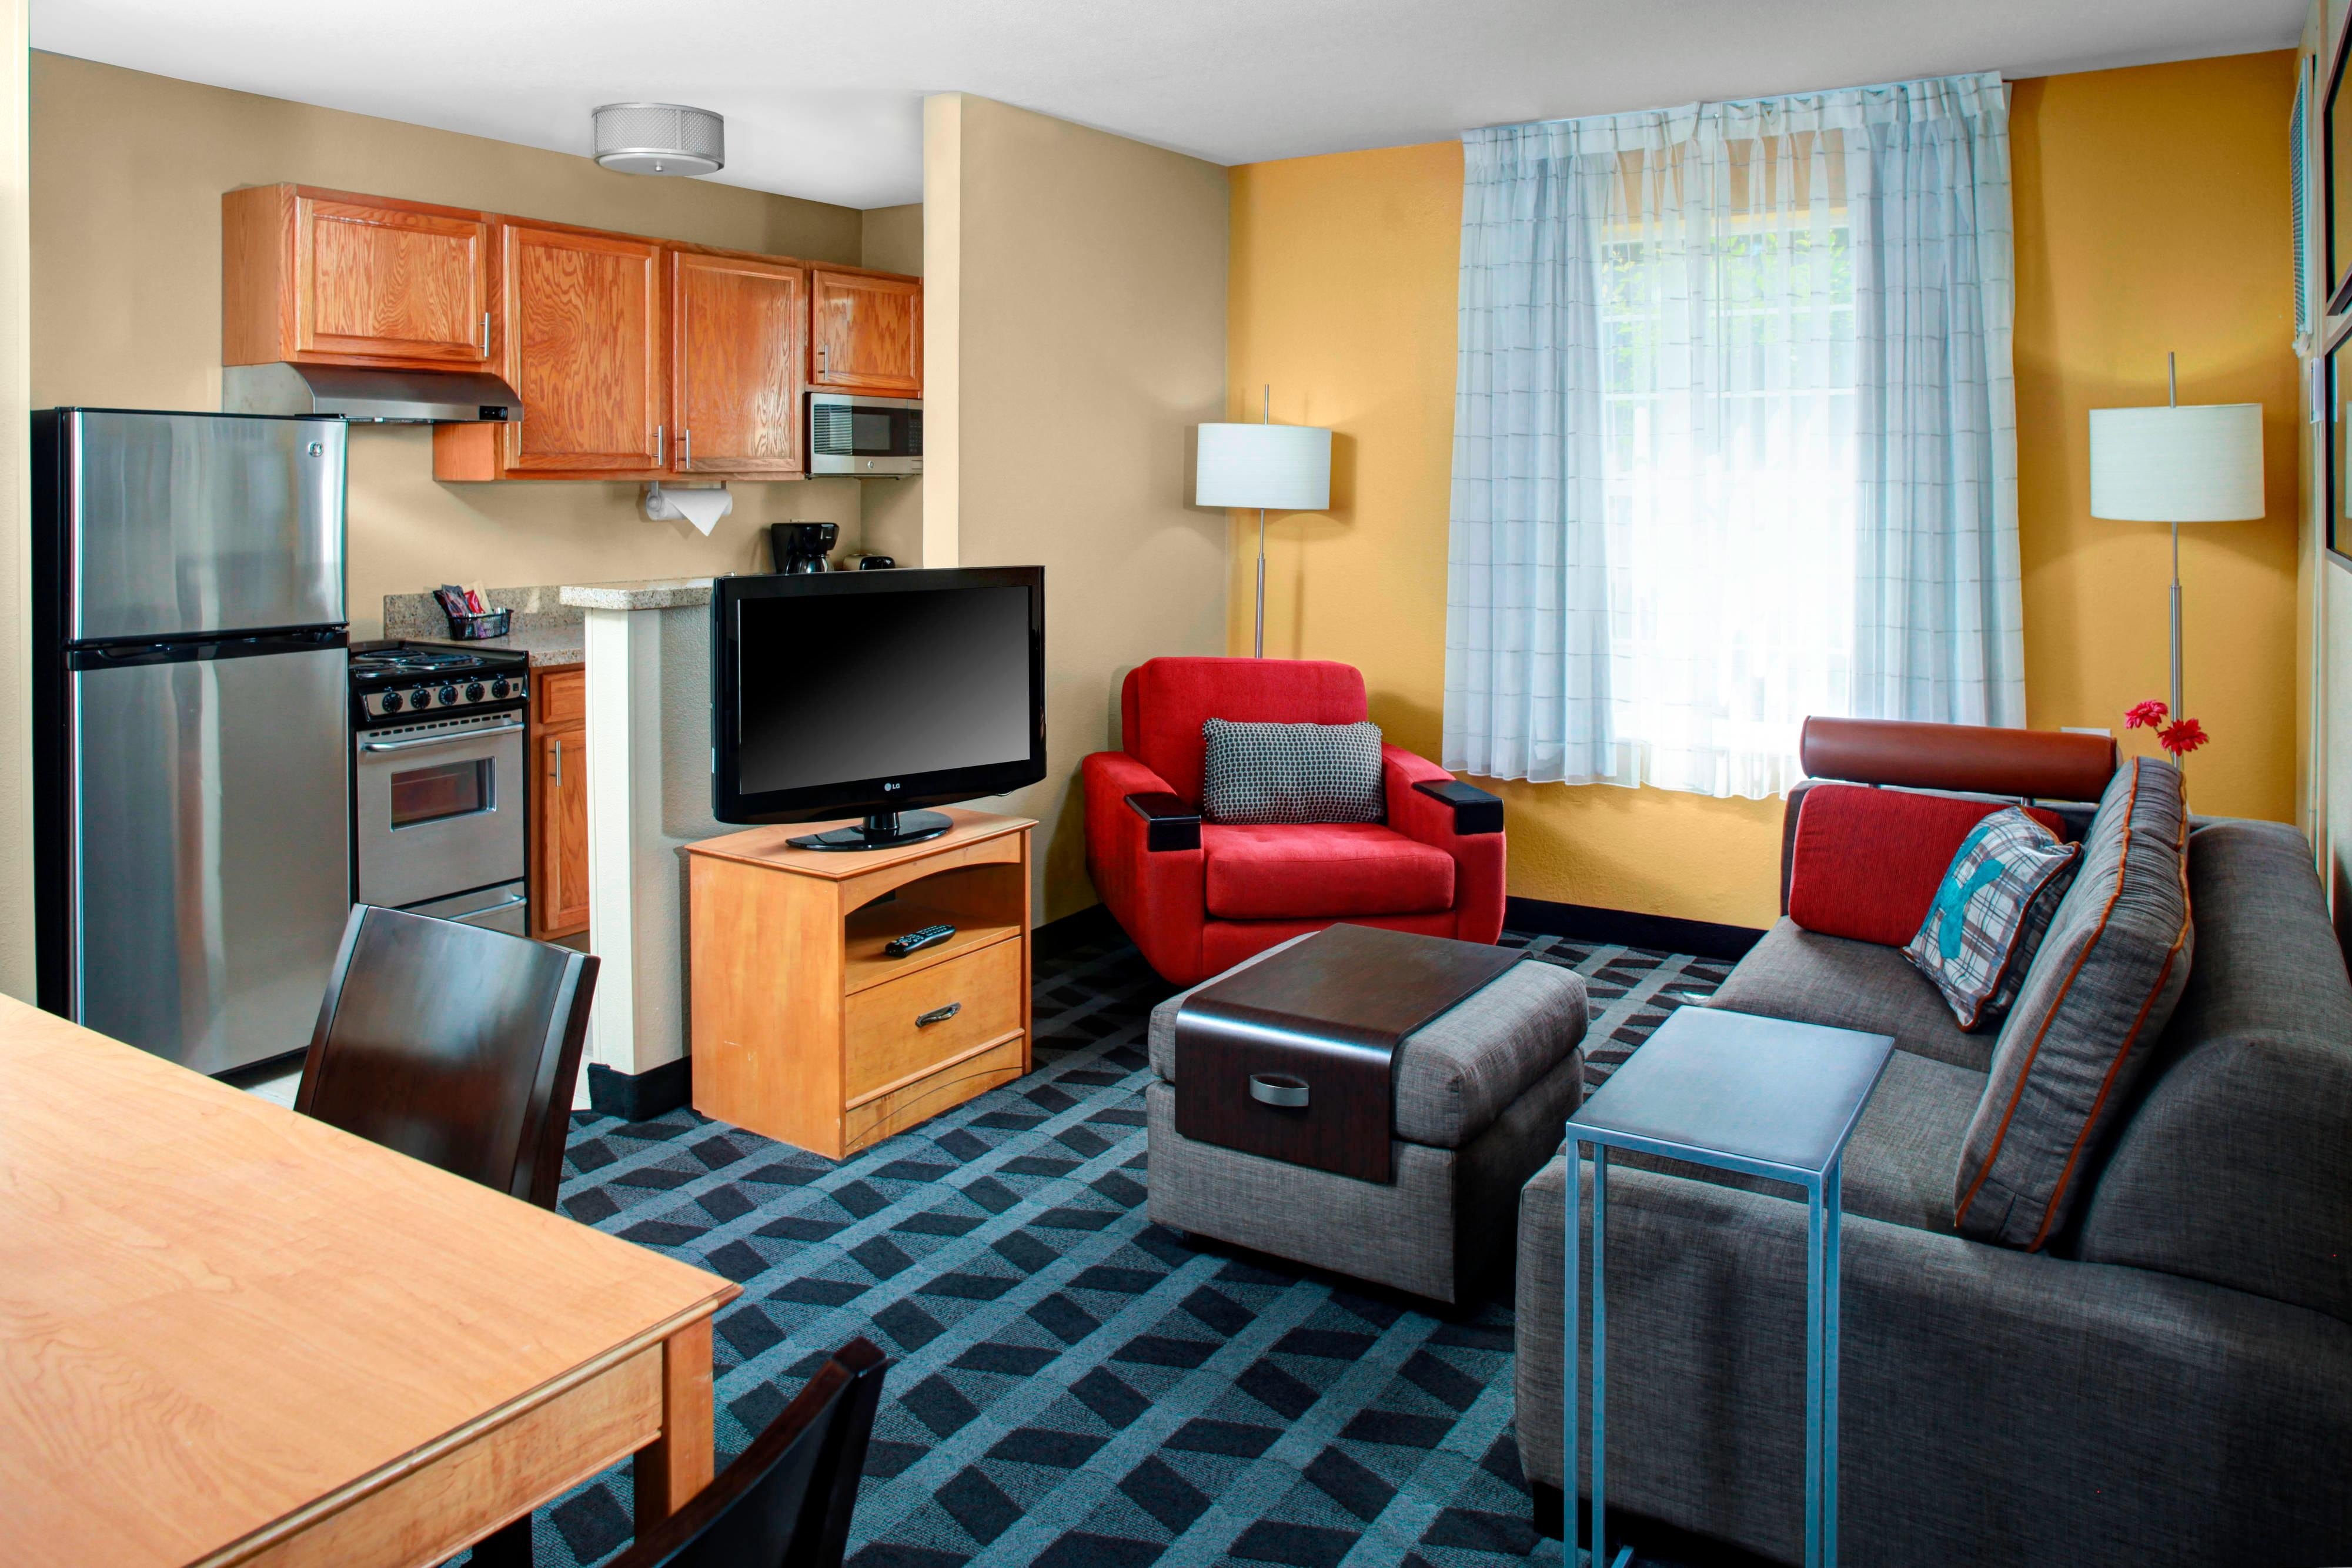 Extended Stay Hotel In Fresno California Towneplace Suites